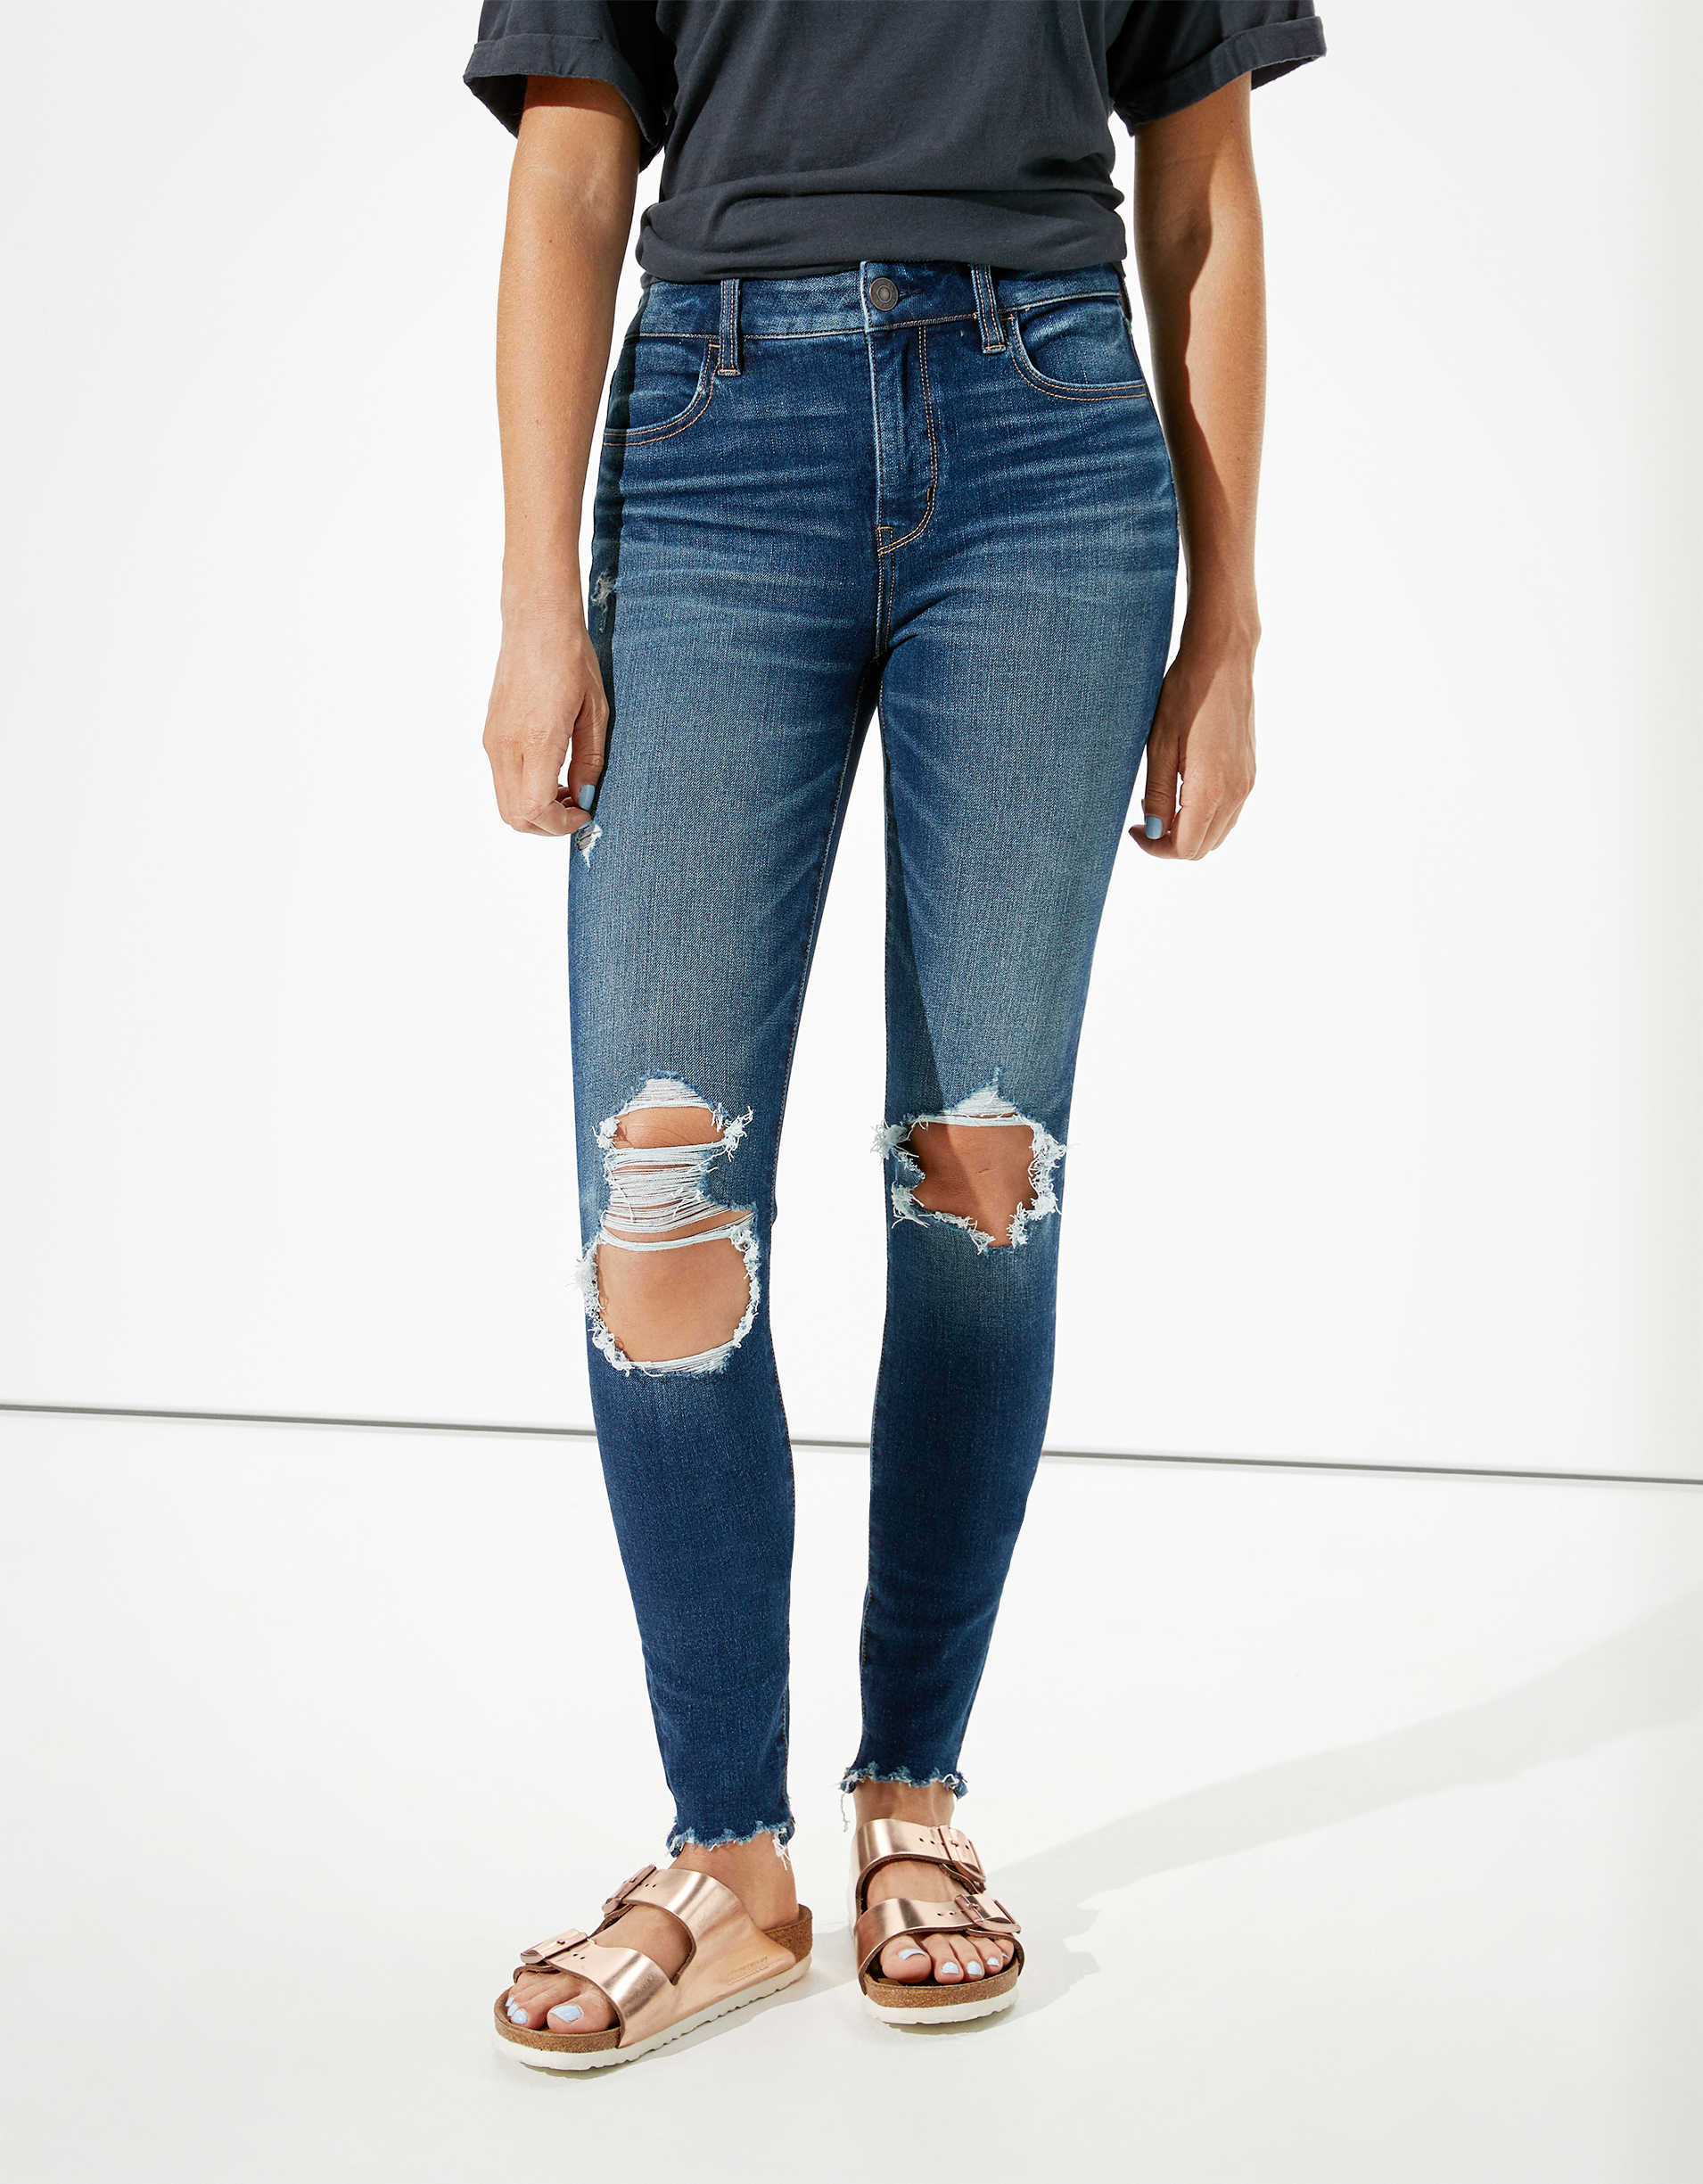 AE The Dream Jean High-Waisted Jegging